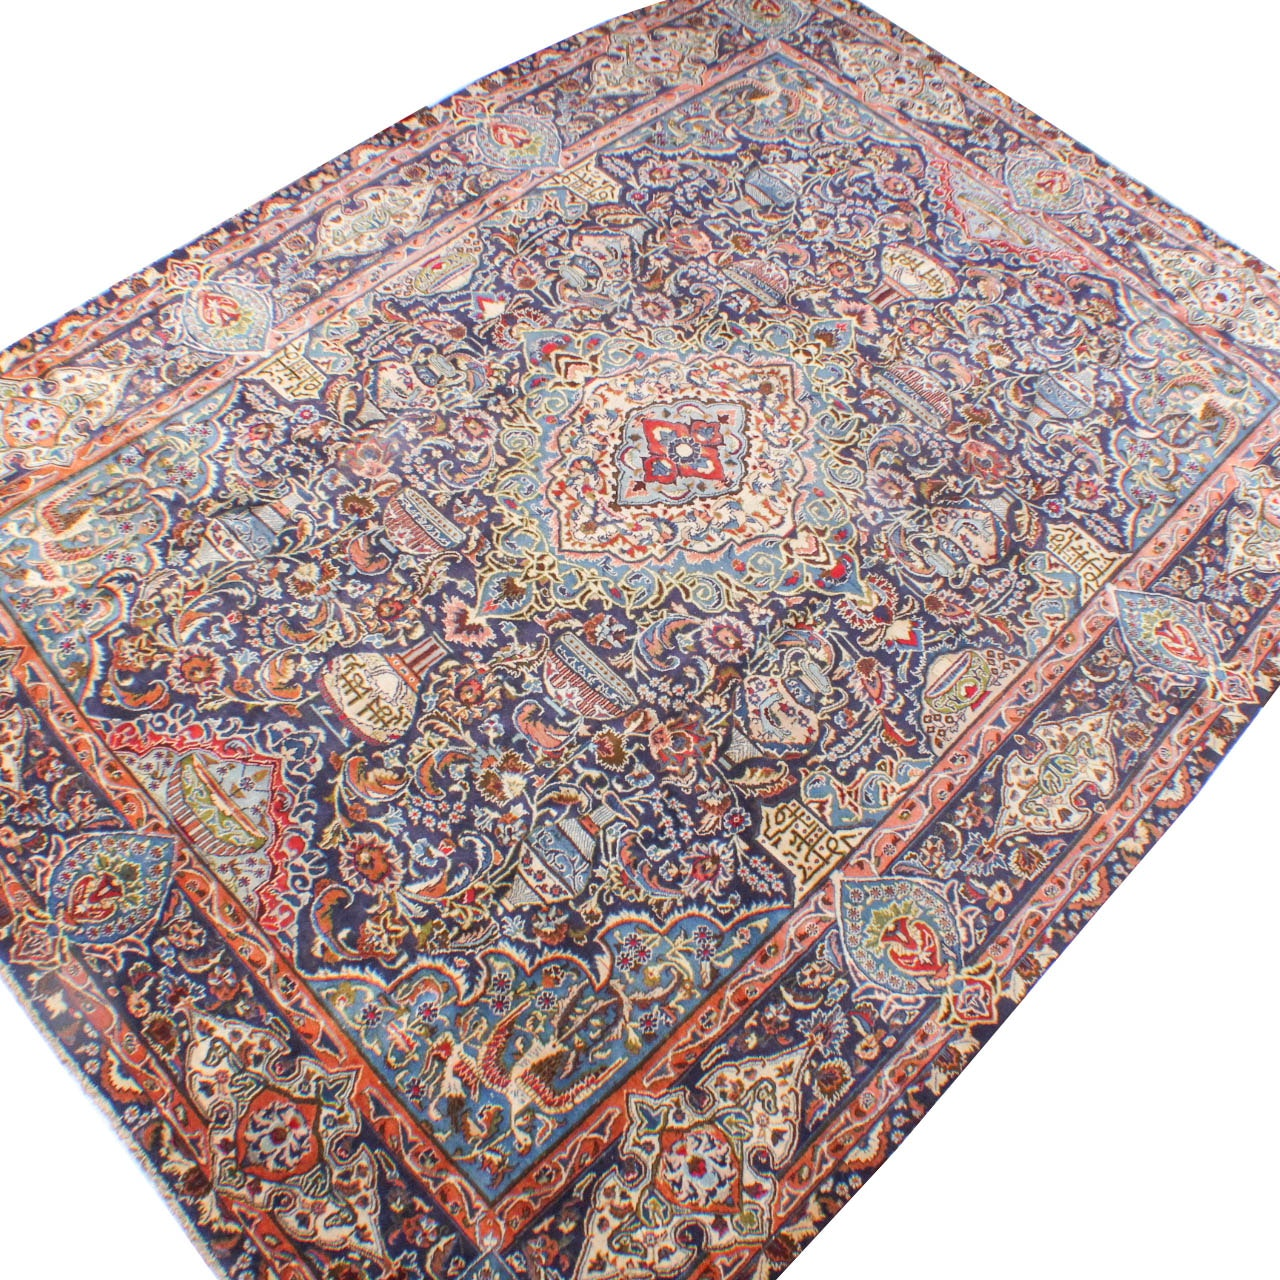 Circa 1930s Hand-Knotted Persian Pictorial Archaeological Kashmar Room Size Rug